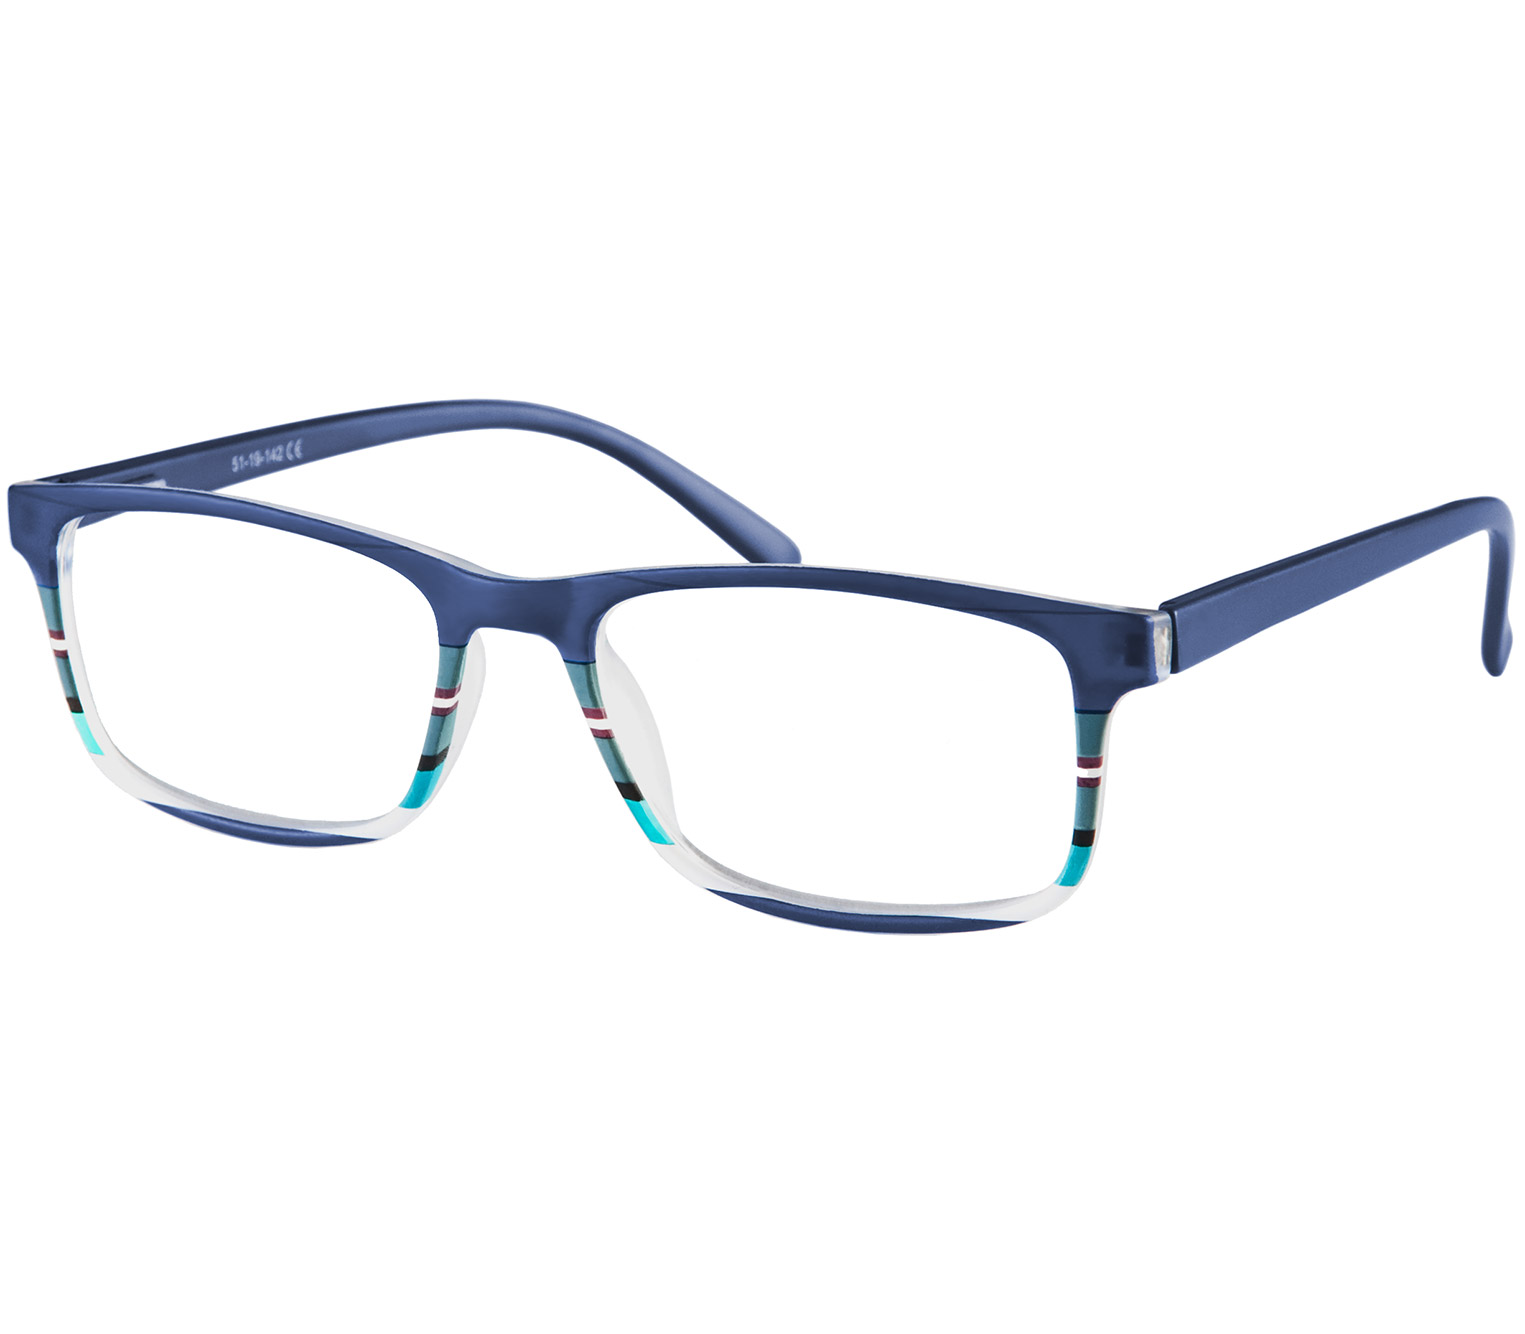 Main Image (Angle) - Samba (Blue) Classic Reading Glasses